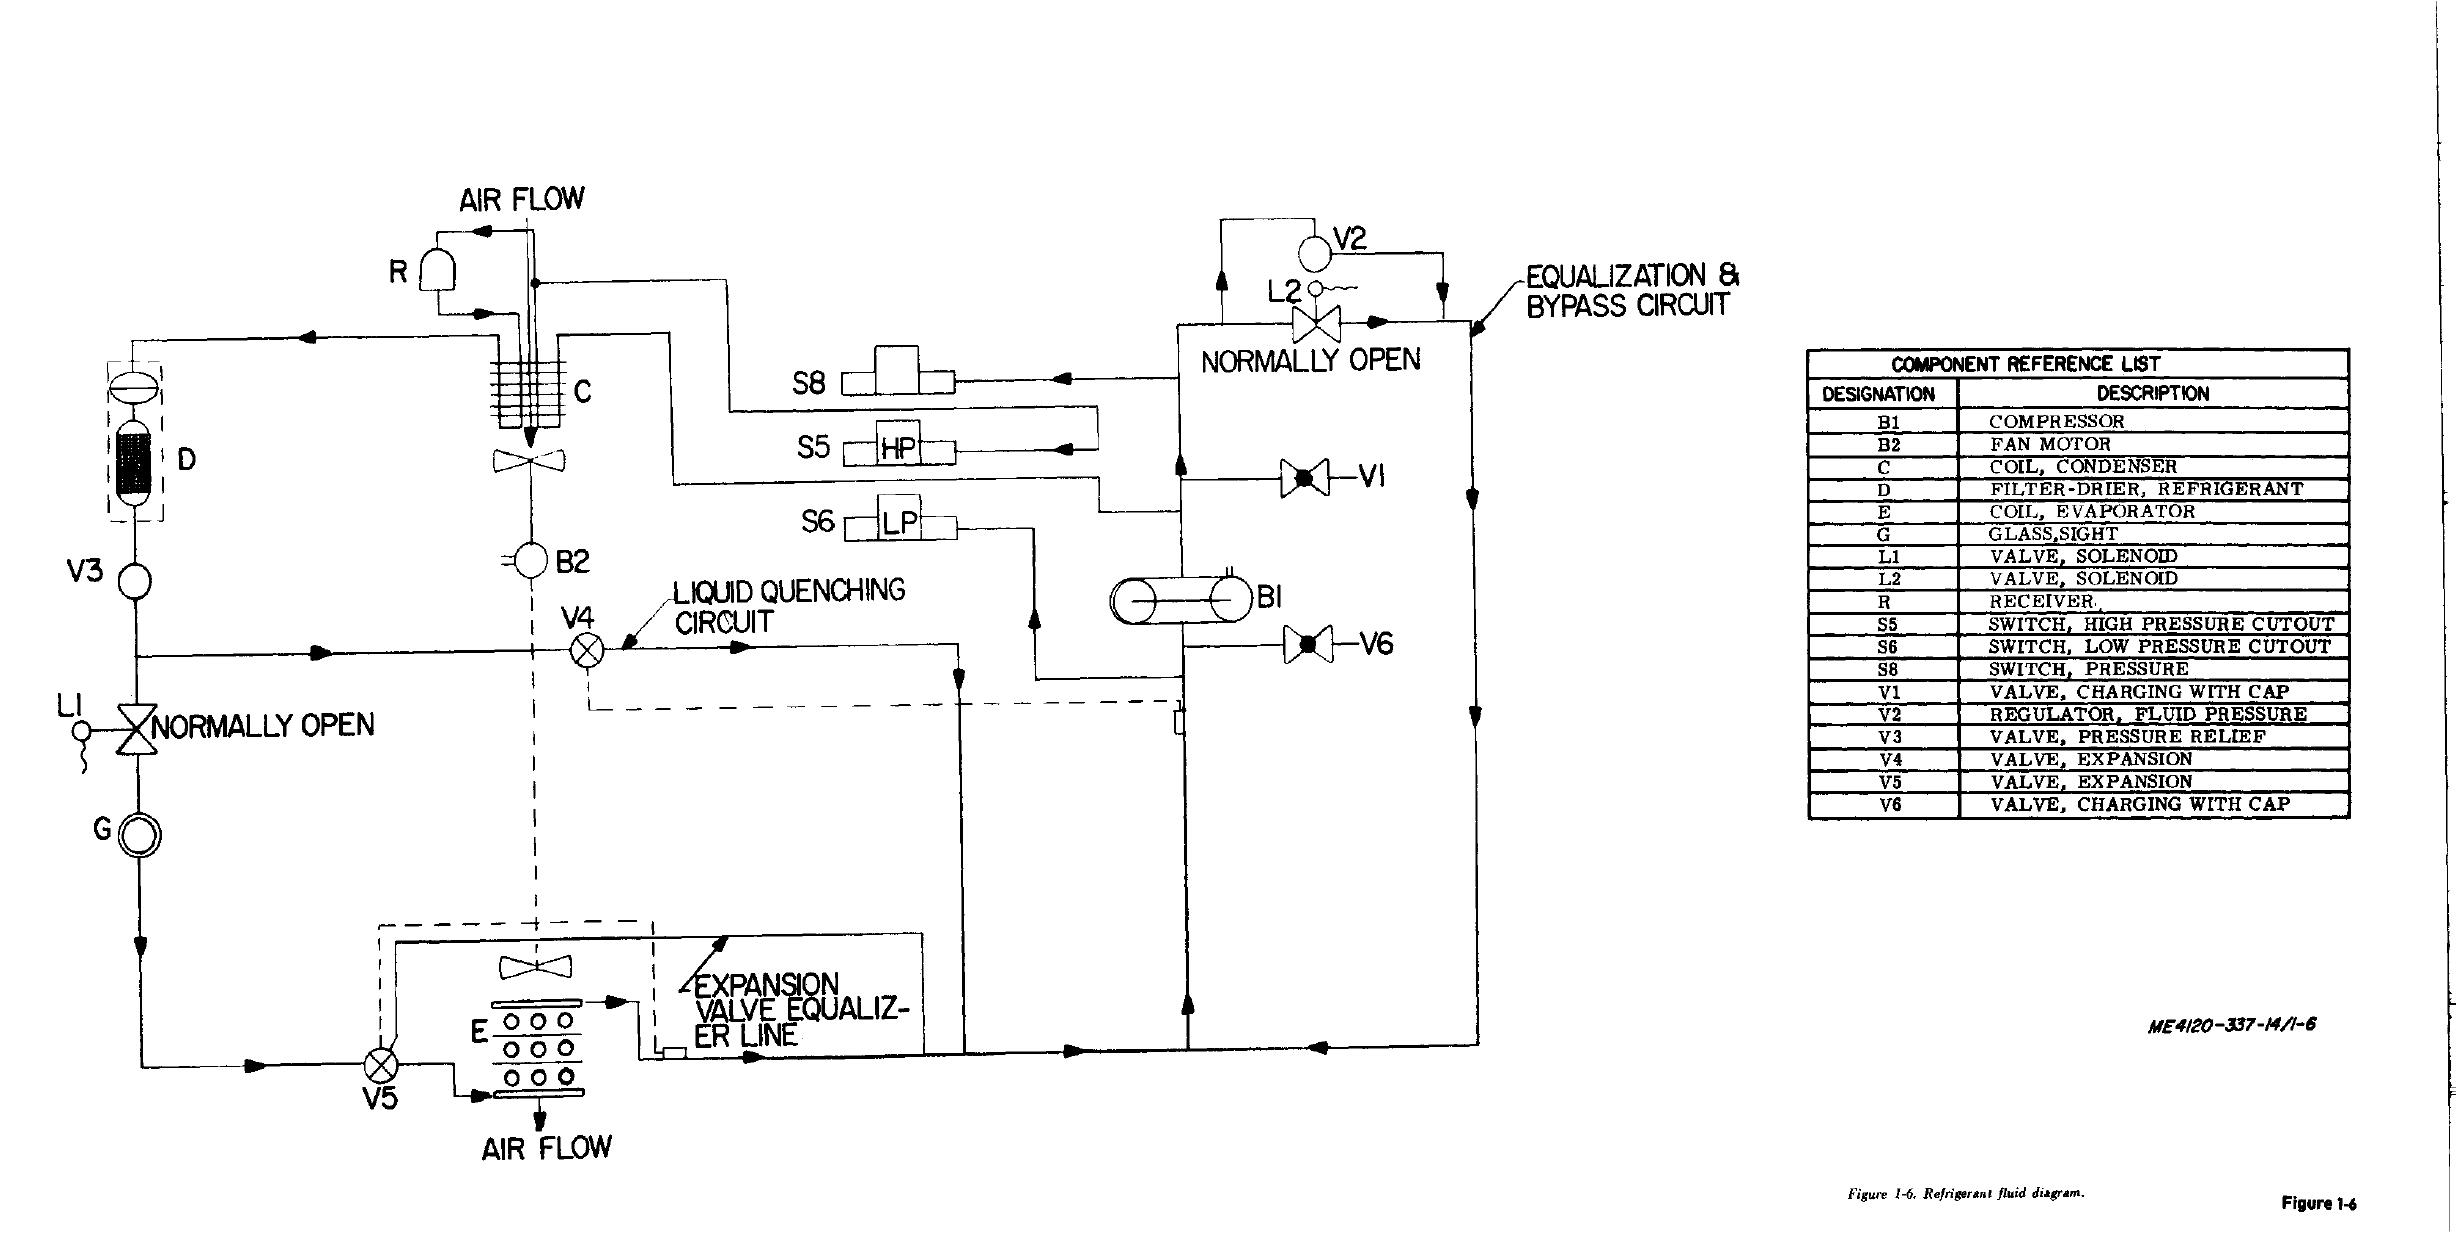 TM-5-4120-337-140077im York Air Conditioning Wiring Diagrams on mitsubishi air conditioning wiring diagram, york air handler parts, york air conditioning serial number, ruud air conditioning wiring diagram, air conditioning system diagram, auto air conditioning wiring diagram, day & night air conditioning wiring diagram, home air conditioning wiring diagram, amana air conditioning wiring diagram, ford air conditioning wiring diagram, york air conditioners model numbers, air conditioner diagram, air conditioning compressor wiring diagram, york air conditioning remote control, goodman air conditioning wiring diagram, central air conditioning wiring diagram, basic air conditioning wiring diagram, air conditioning units wiring diagram, coleman air conditioning wiring diagram, trane air conditioning wiring diagram,